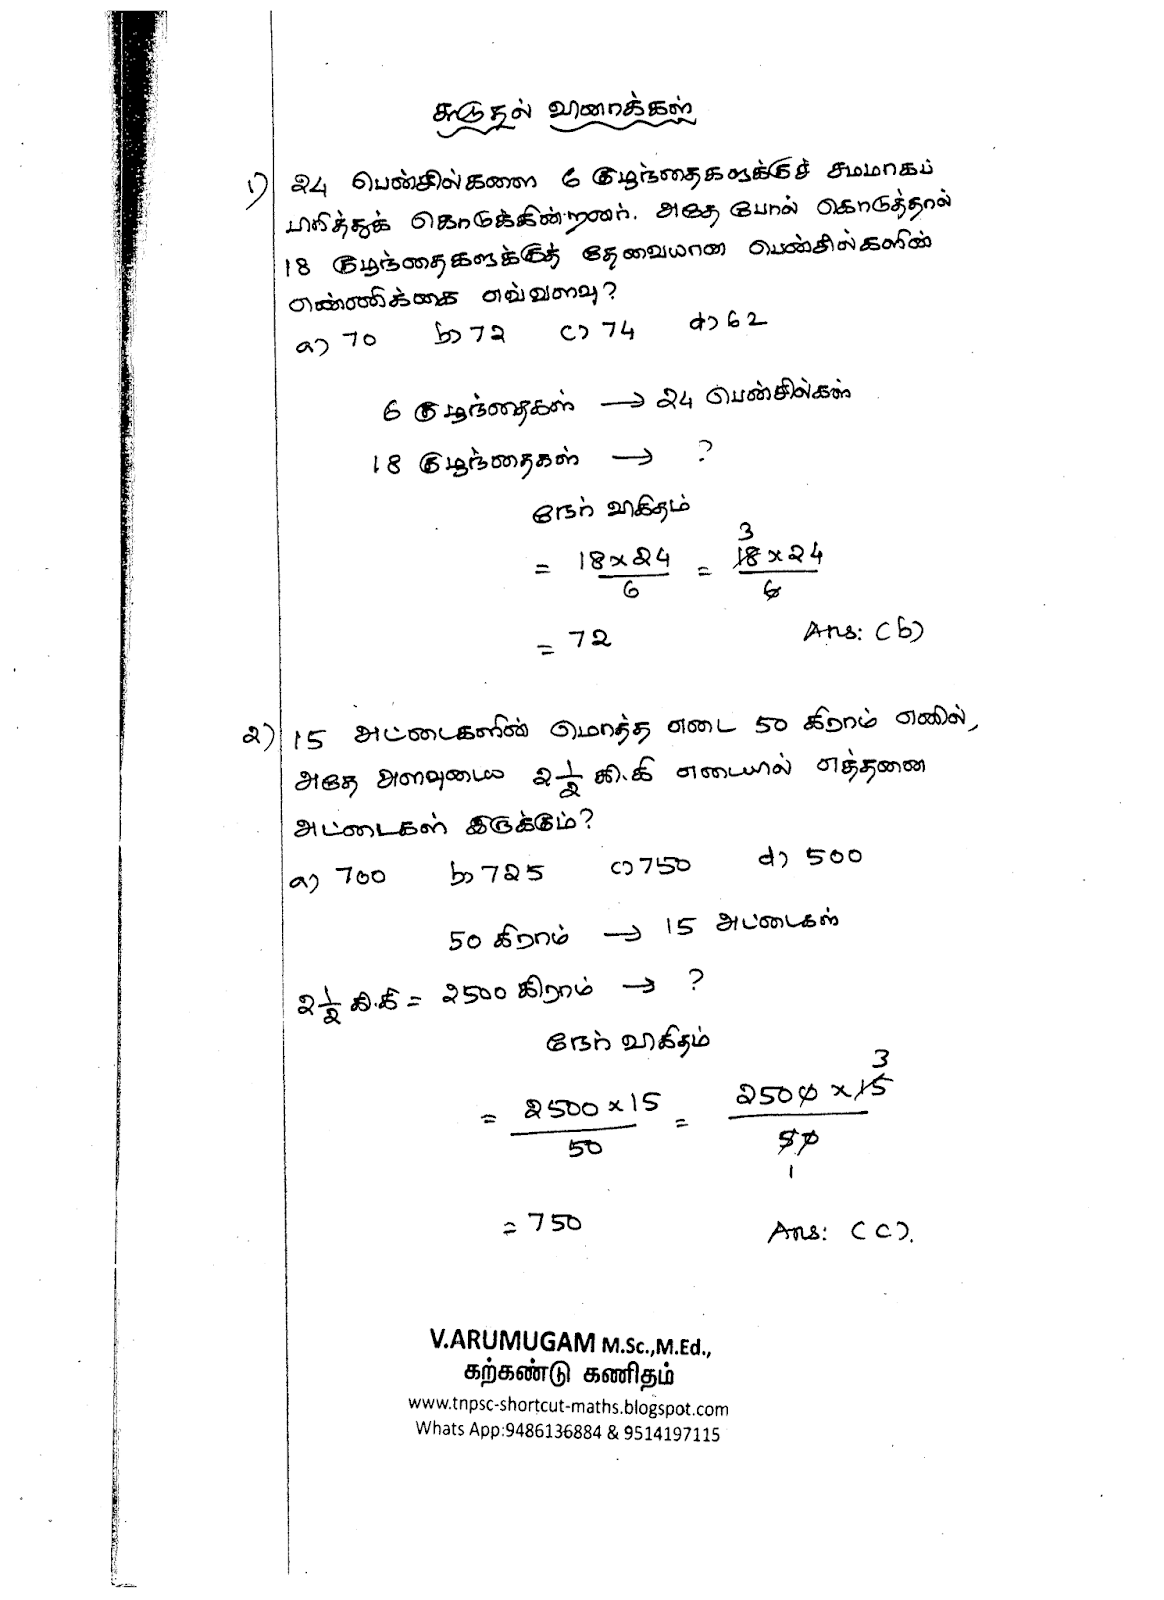 2019 - NEW SYLLABUS - VII STD - I TERM - UNIT-4: DIRECT & INVERSE PROPORTIONS - PAGE - 24/29